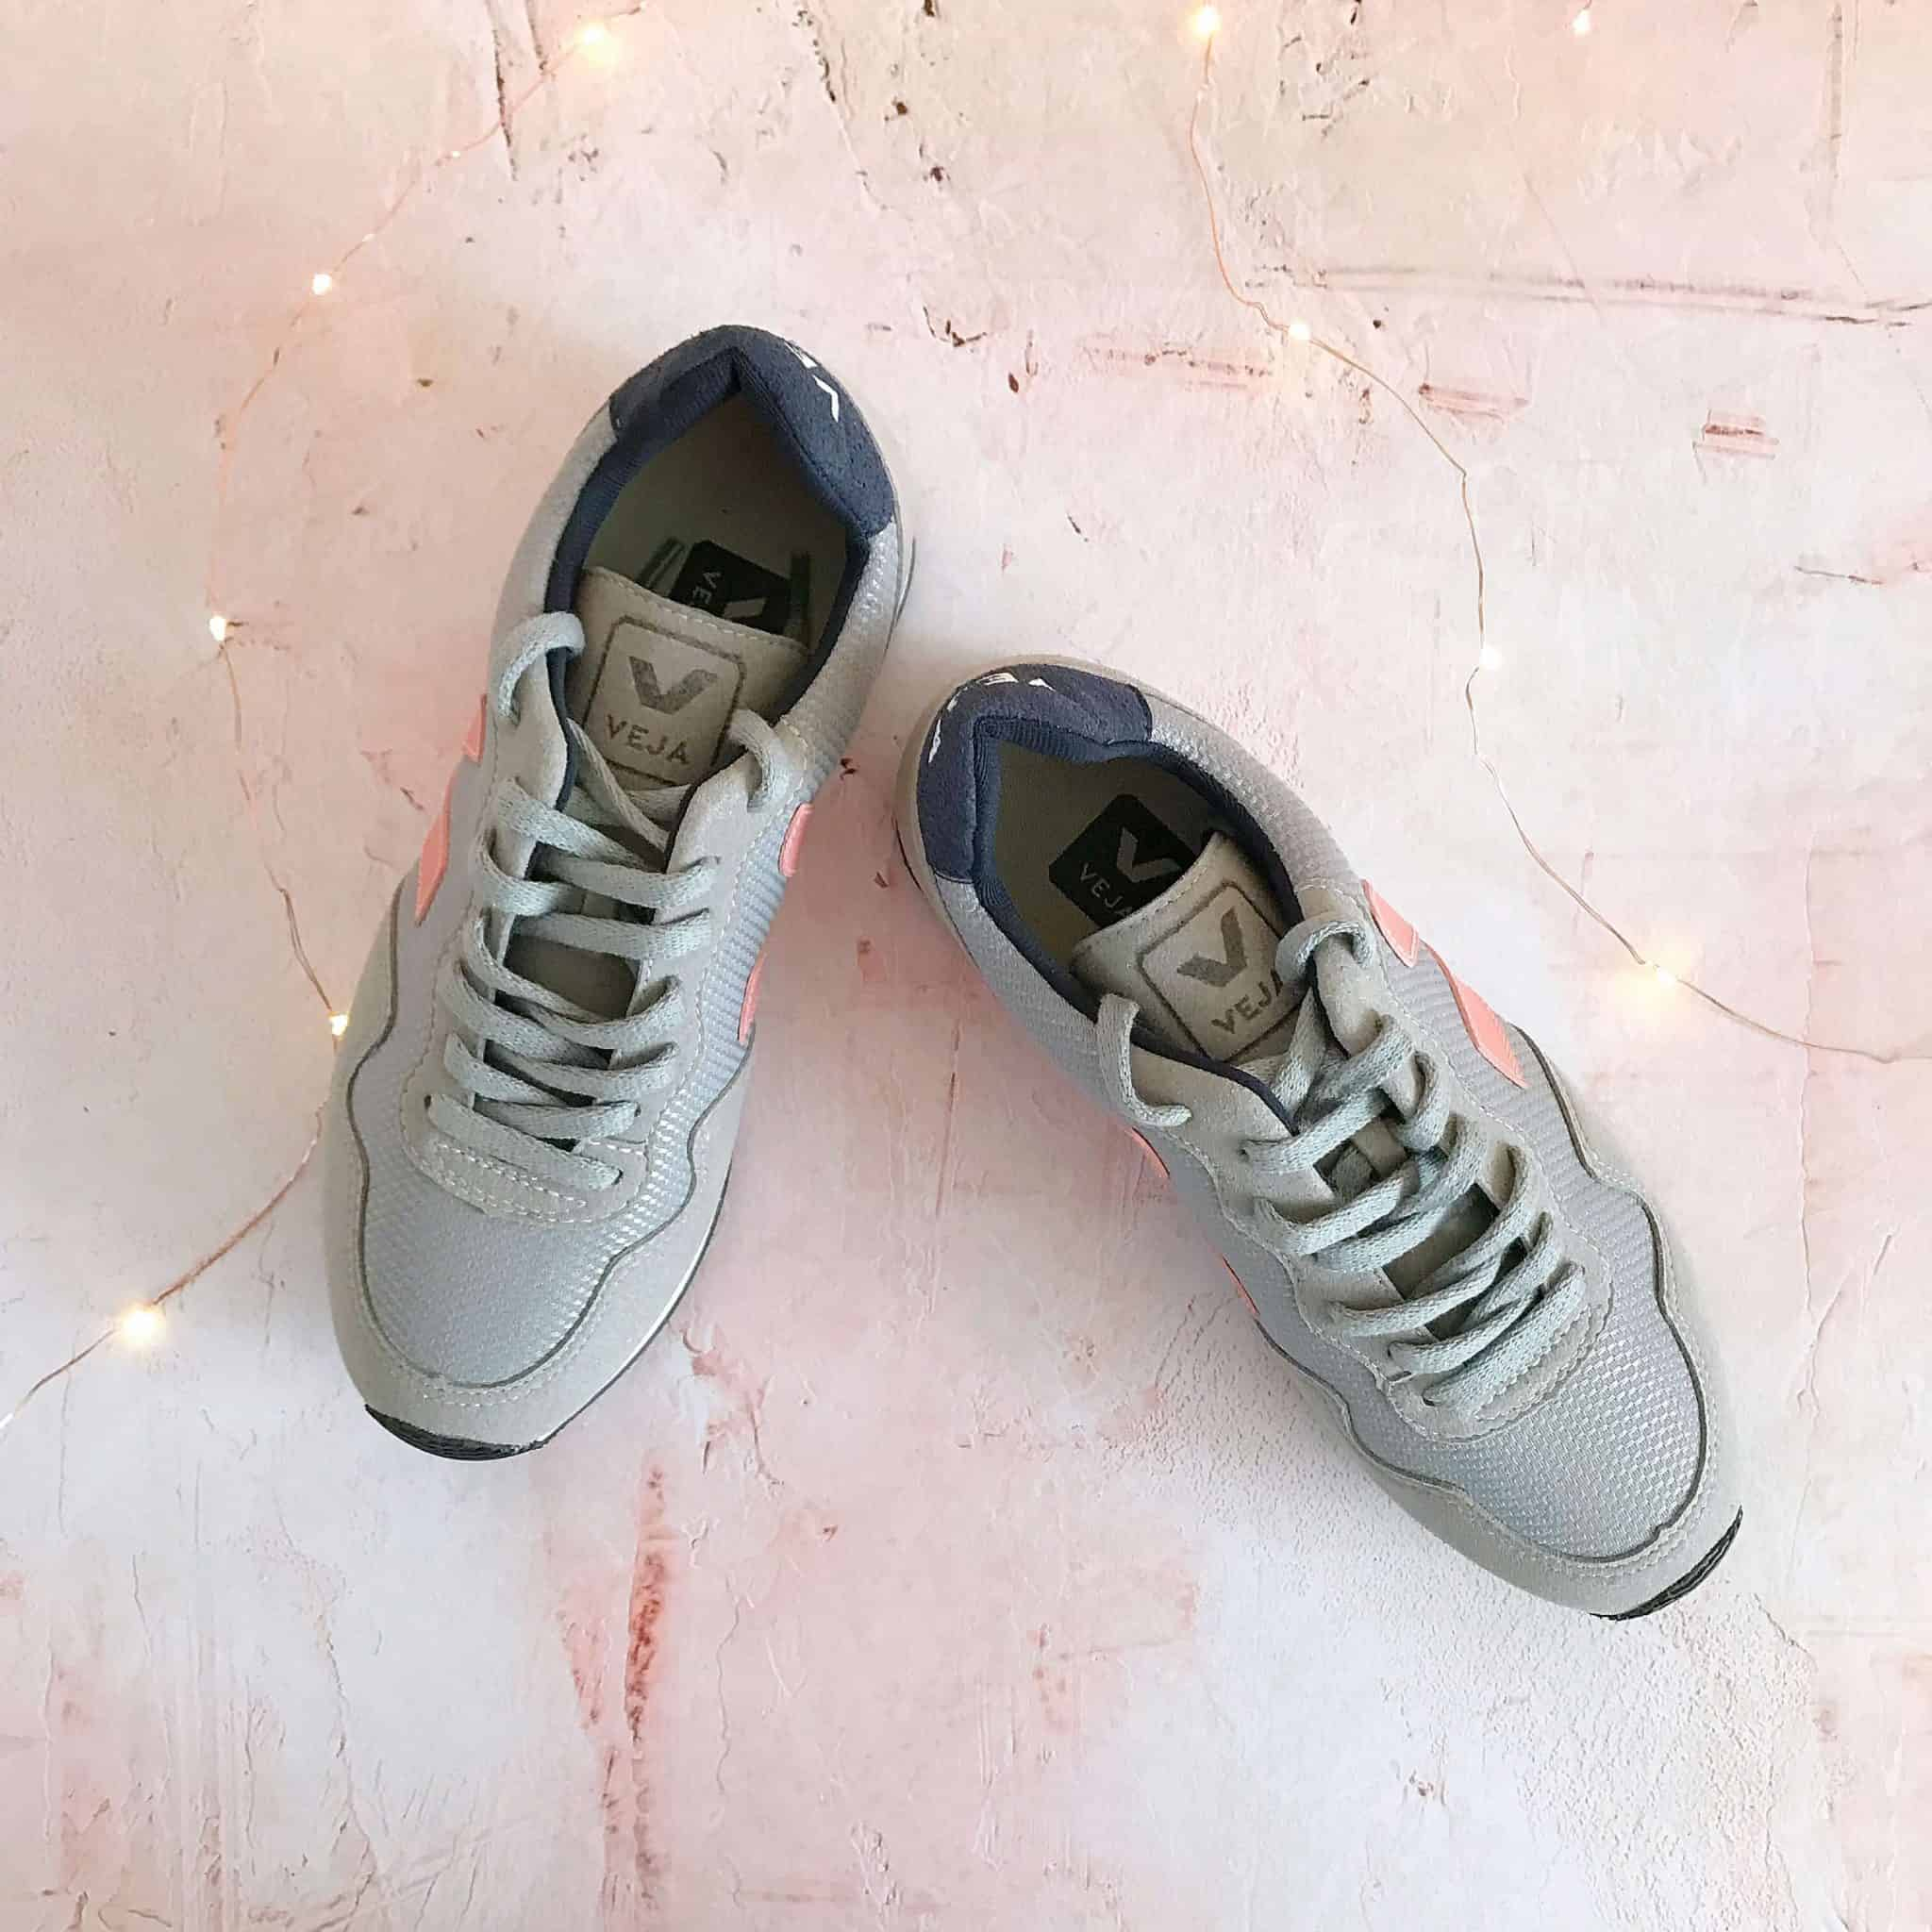 VEJA Trainers- a great ethical gift